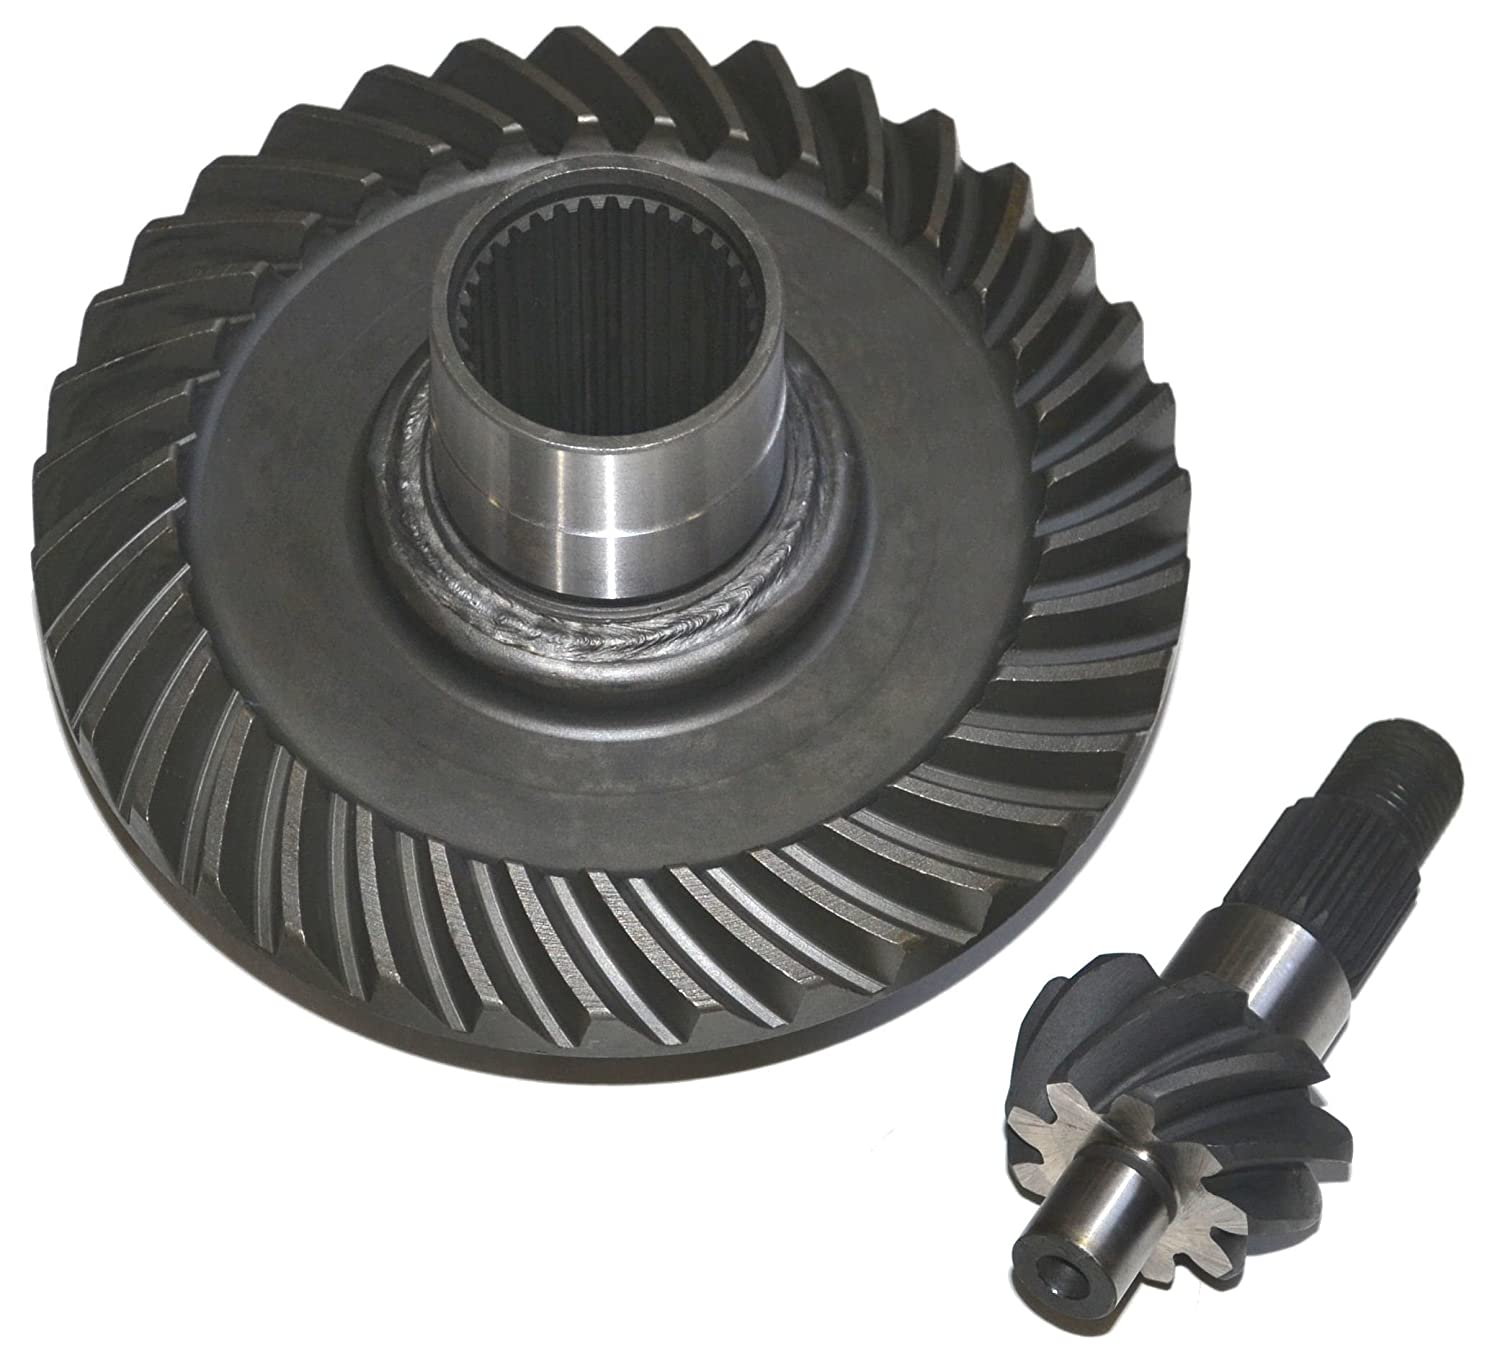 Rear Differential Ring and Pinion Gear fits 1988-2000 Honda TRX300 TRX300FW 300 Fourtrax